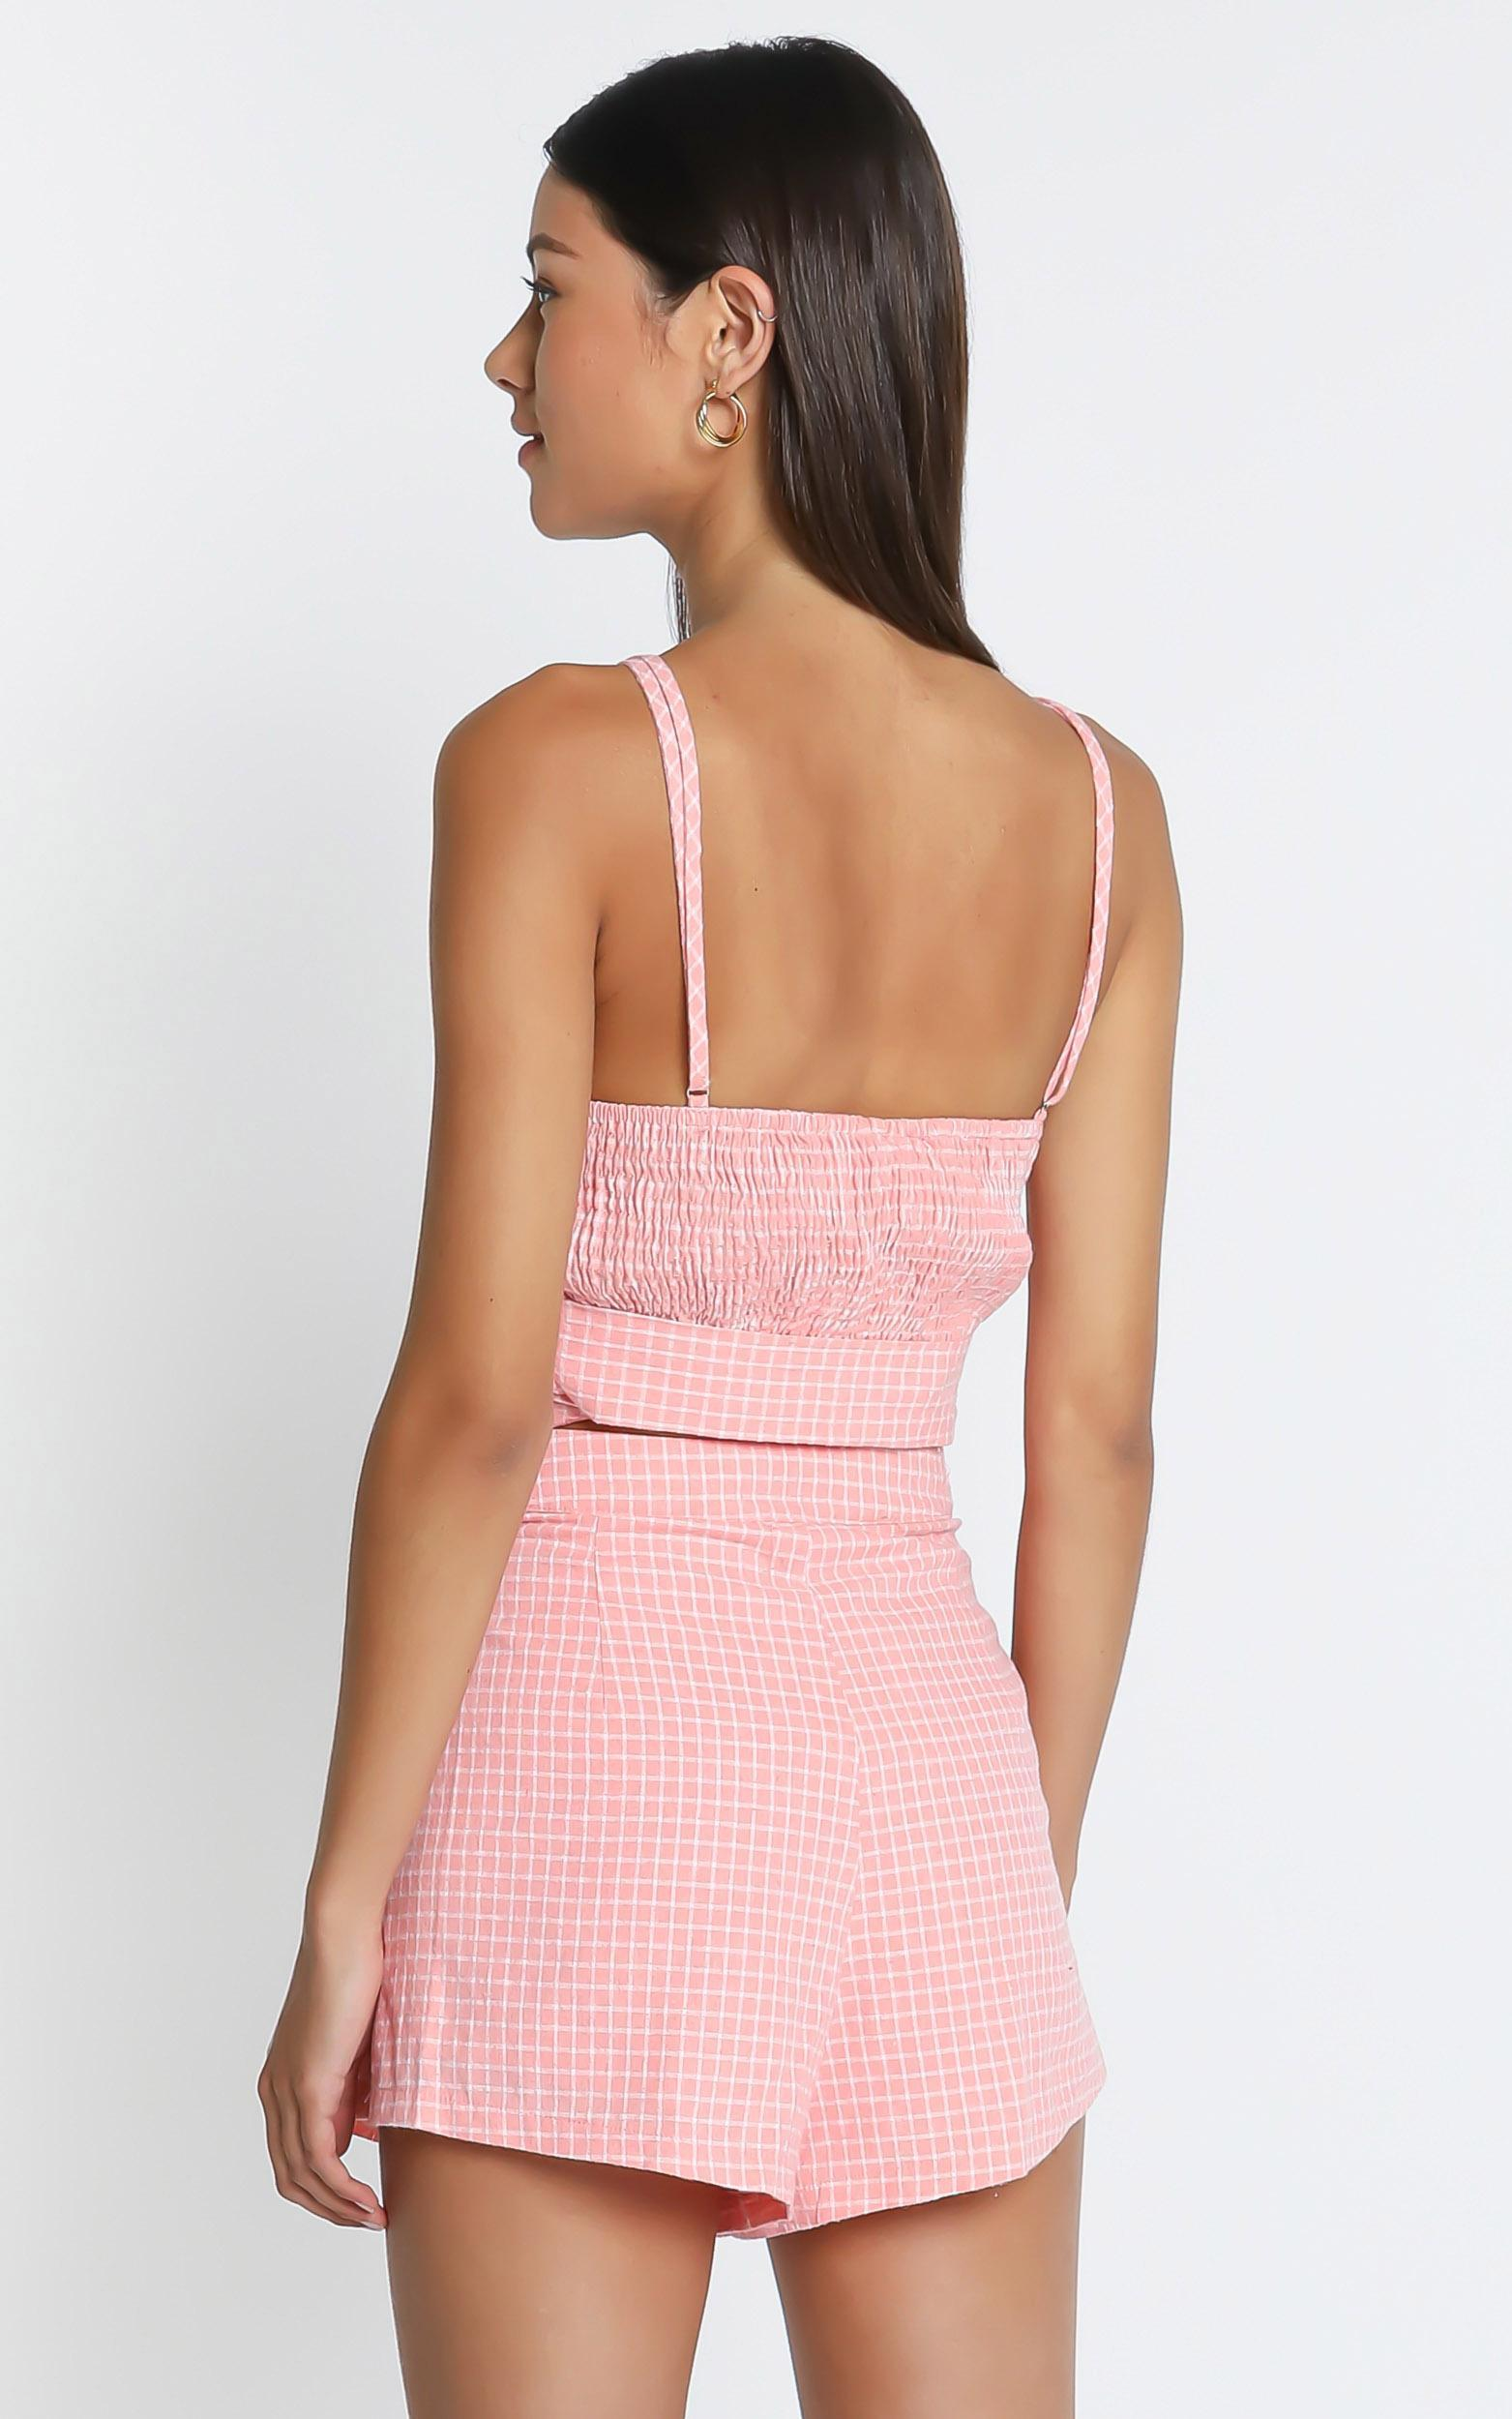 Abelia Shorts In Pink Check, PNK1, hi-res image number null